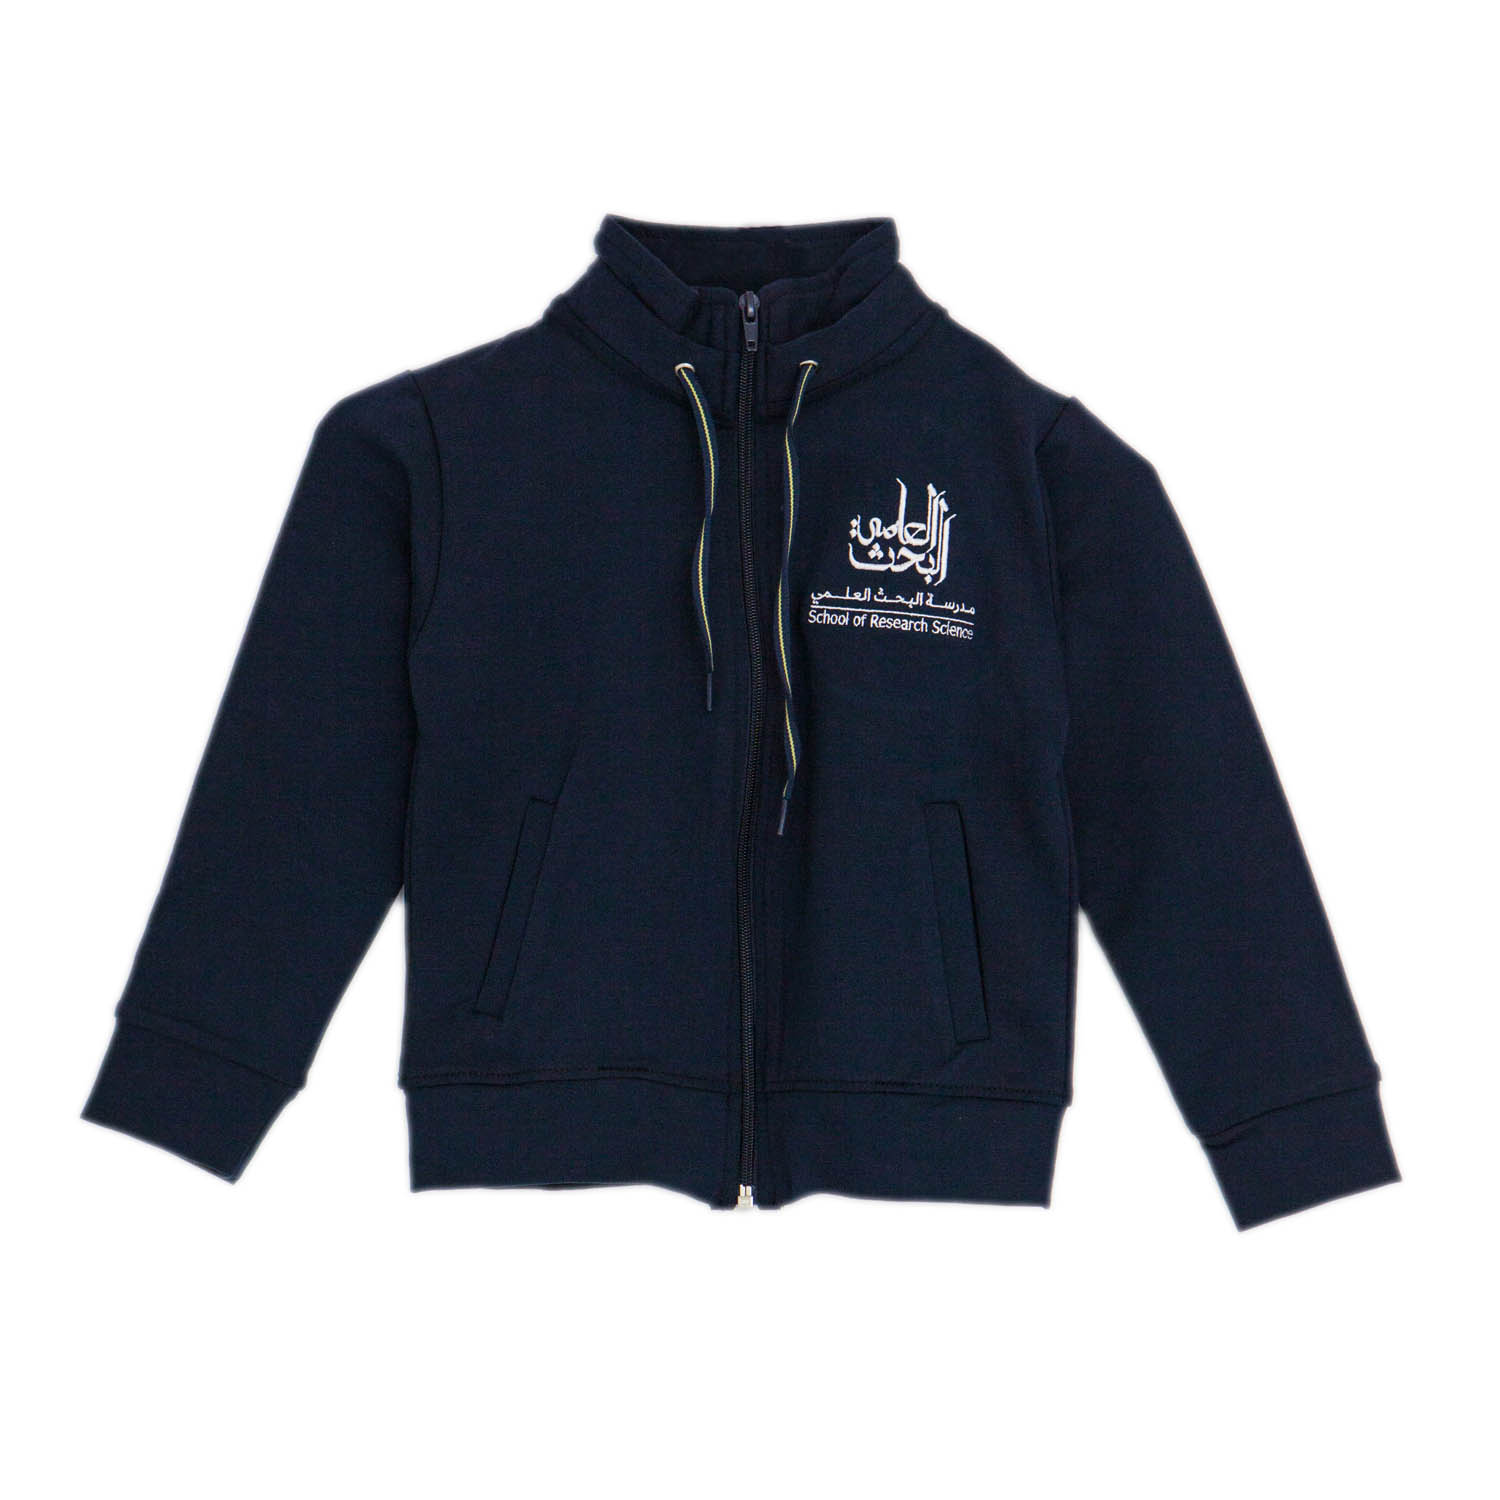 Winter Jacket Navy Blue